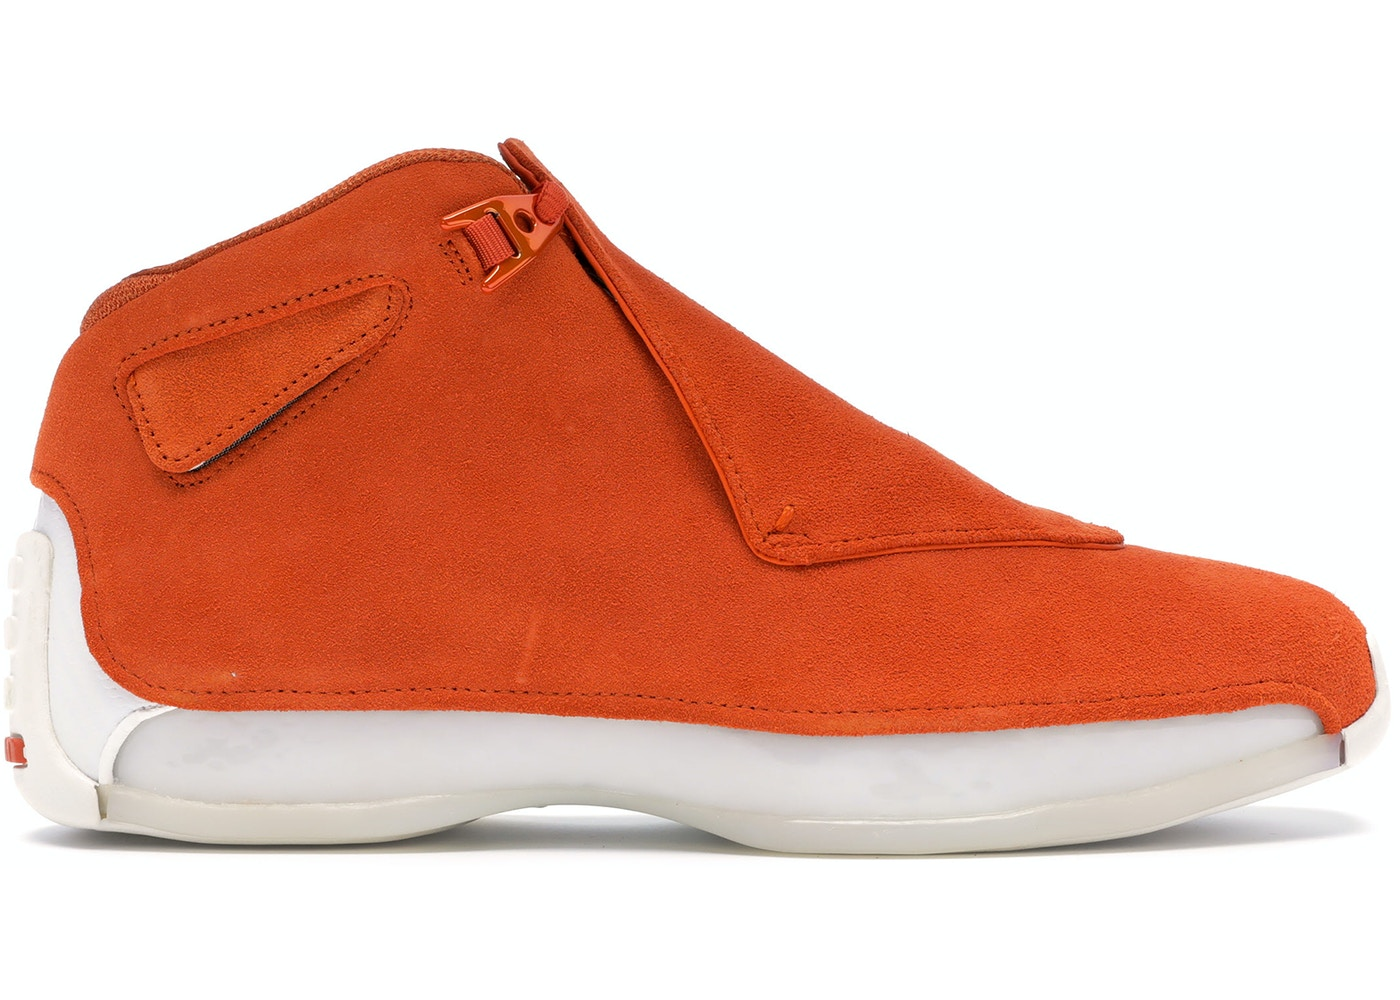 6dc076d05771 Jordan 18 Retro Campfire Orange - AA2494-801